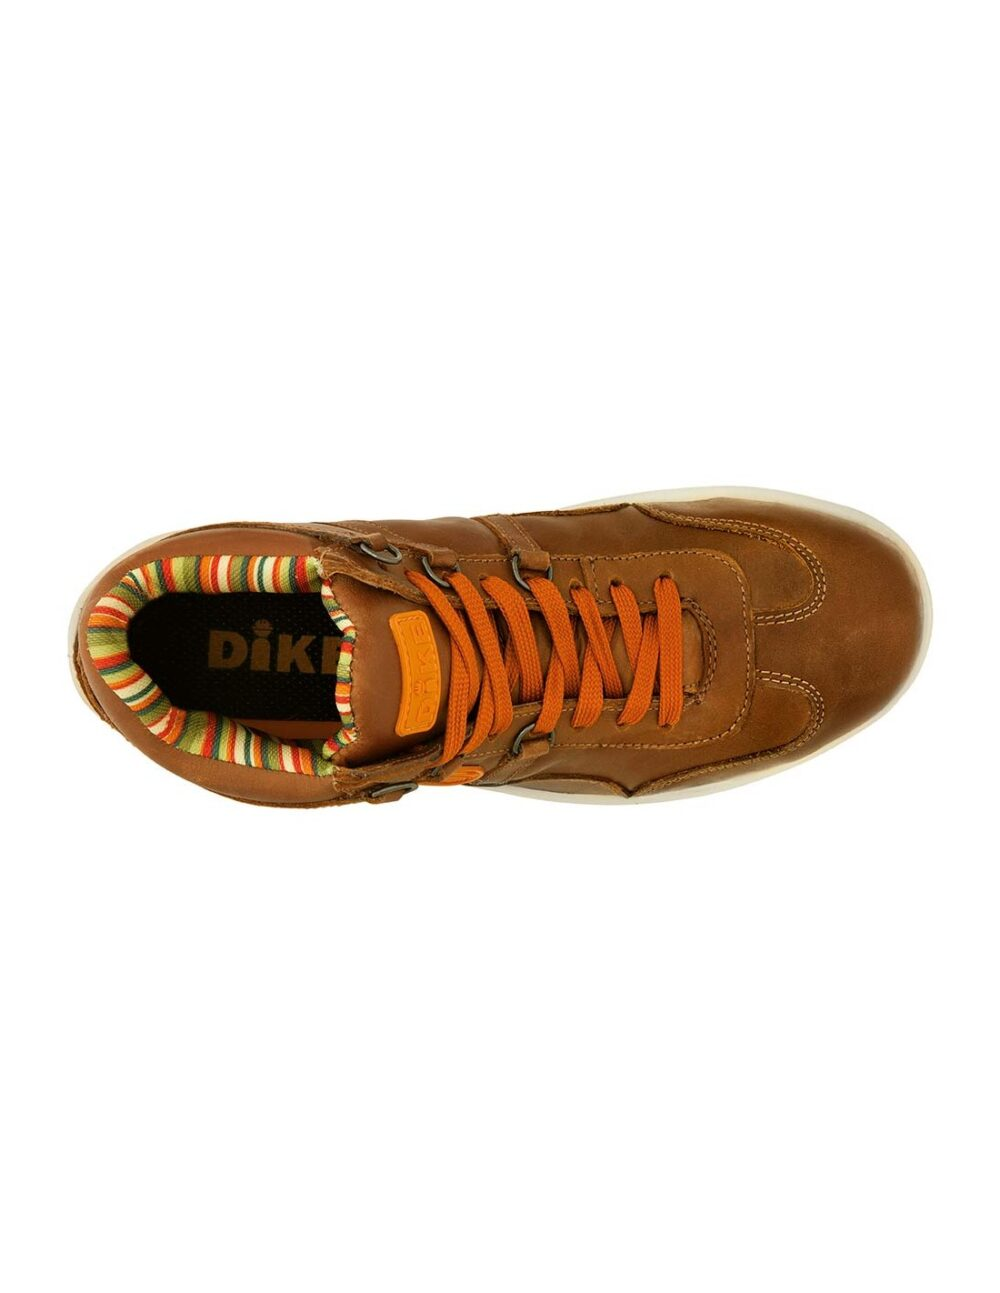 Raving Safety Shoe collection by dike